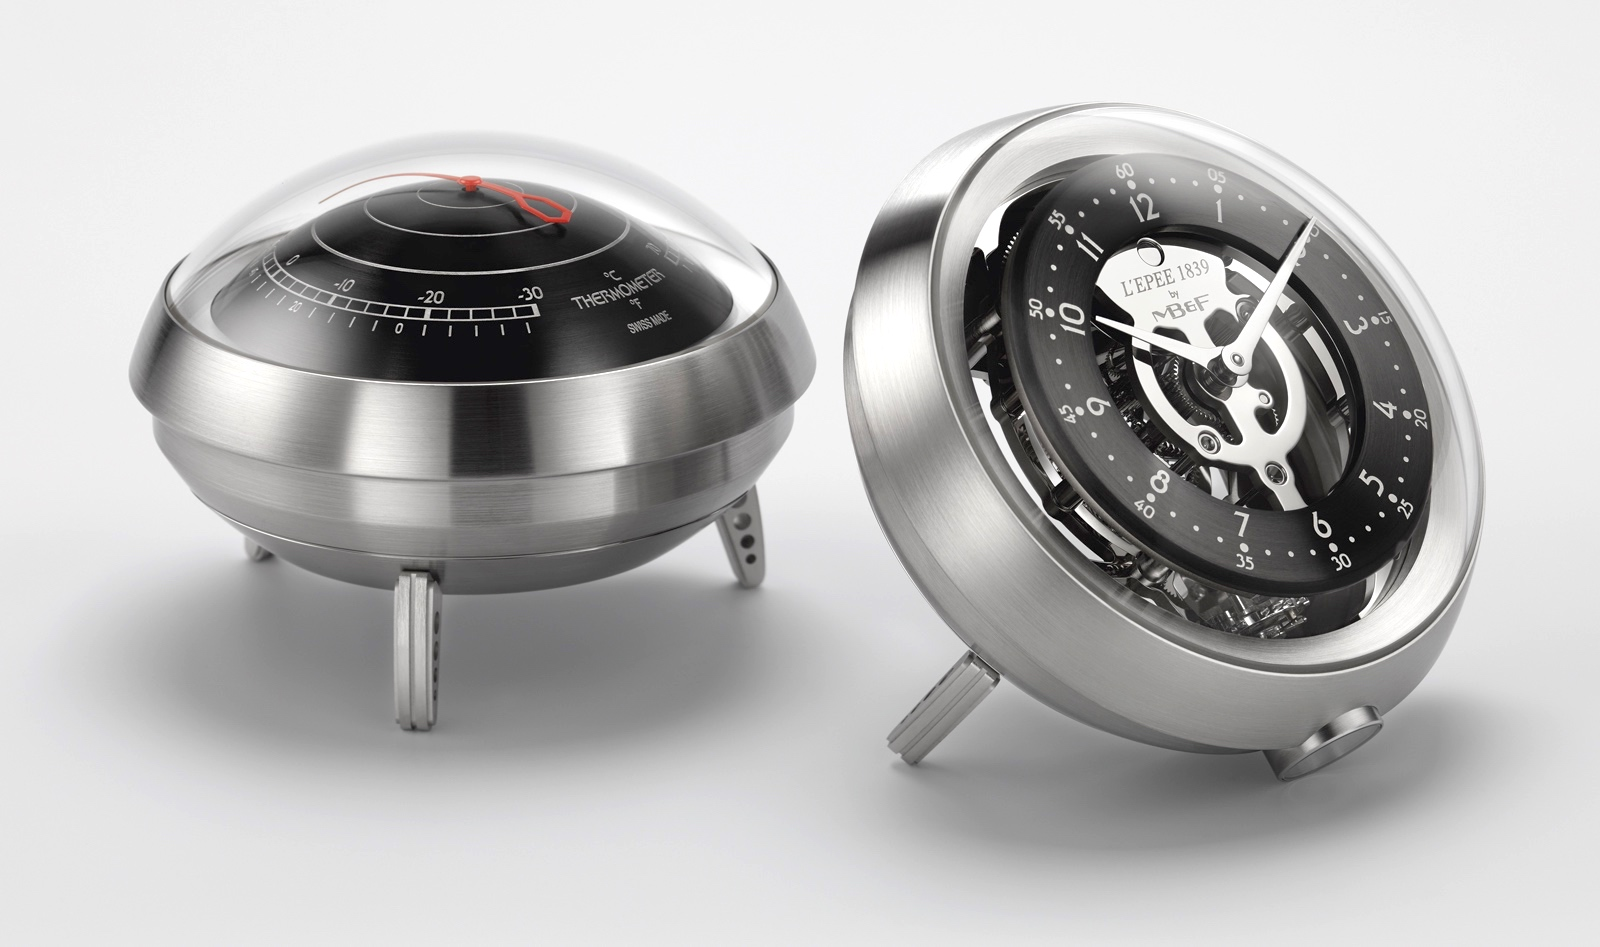 MB&F The Fifth Element Pods